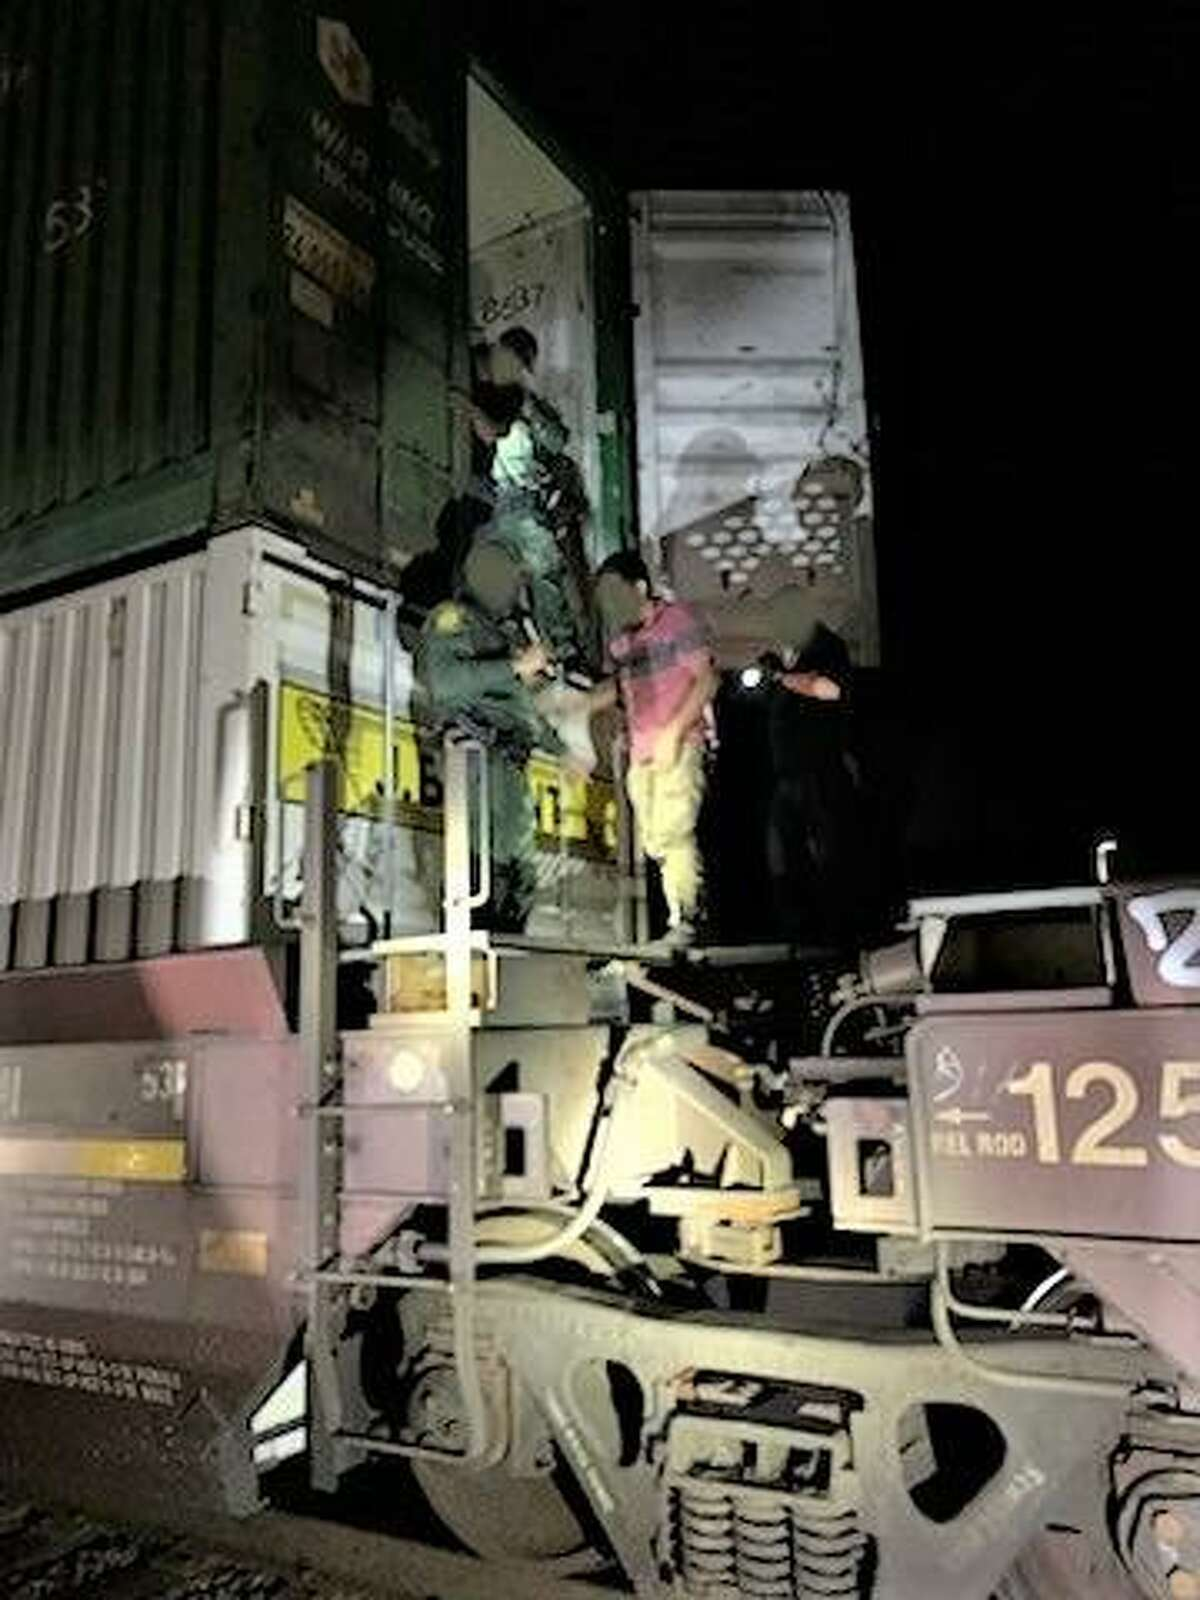 U.S. Border Patrol agents found 16 individuals inside a storage container while inspecting a train near Hebbronville. All were determined to be immigrants who were in the country illegally.